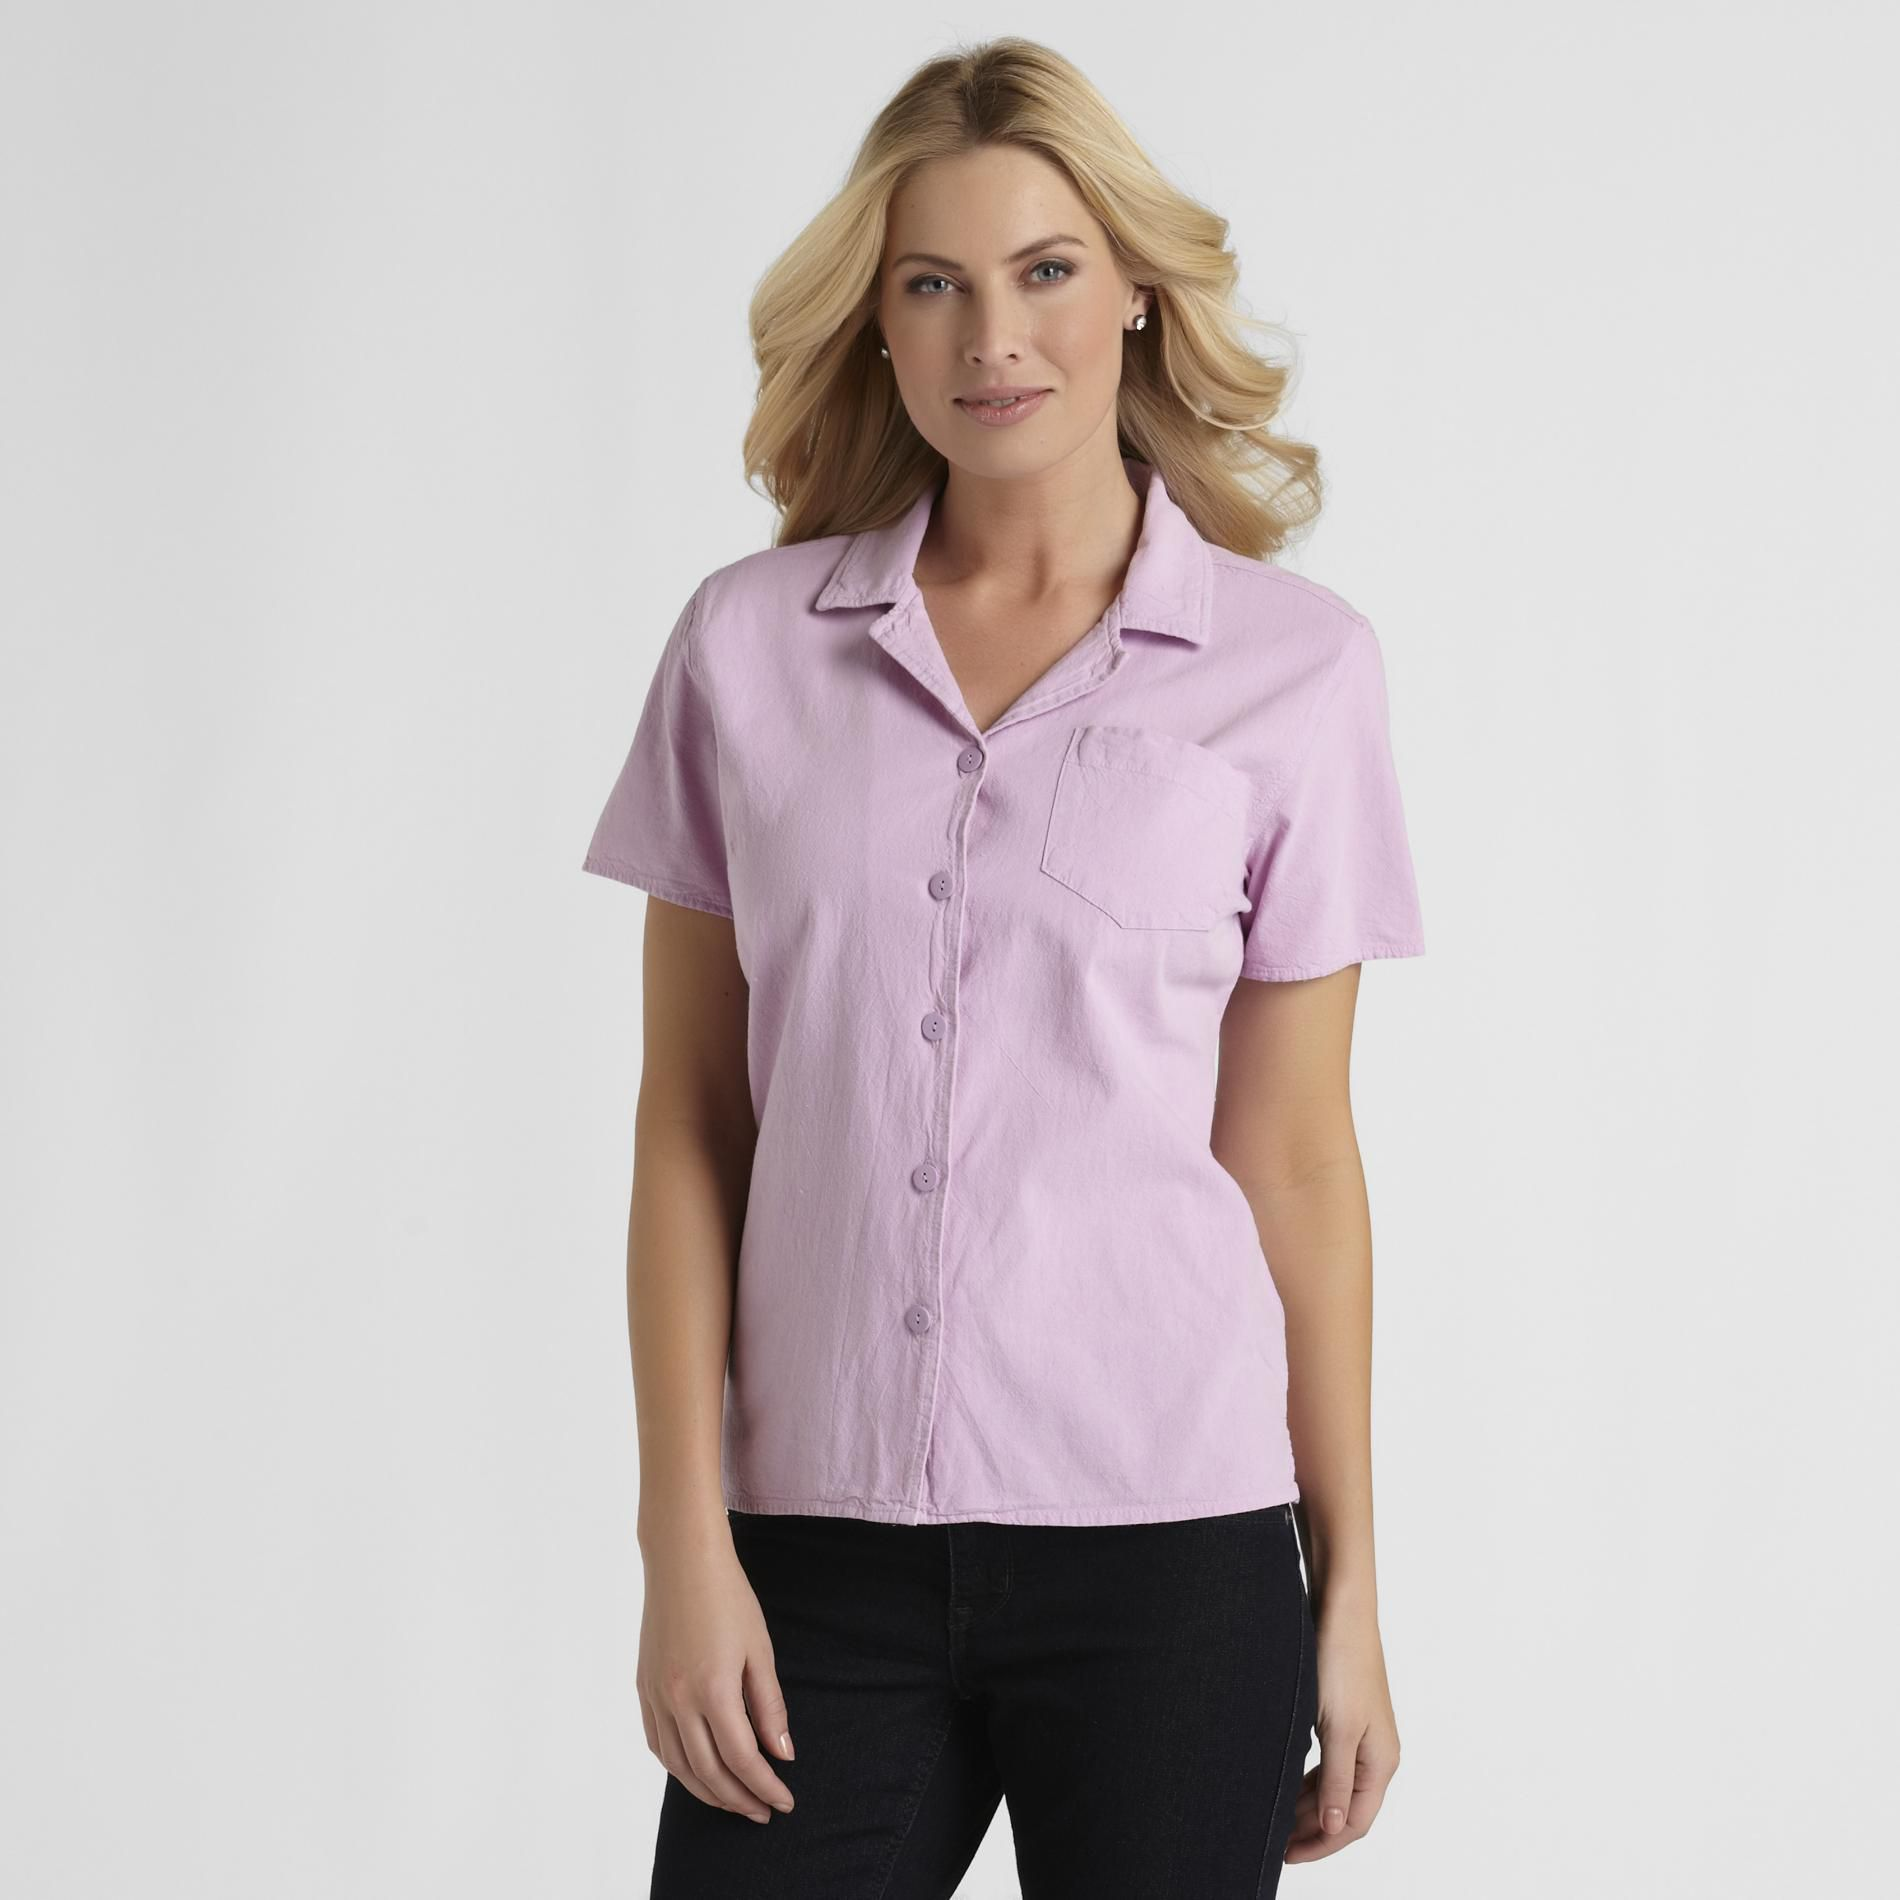 Basic Editions Women's Camp Shirt at Kmart.com